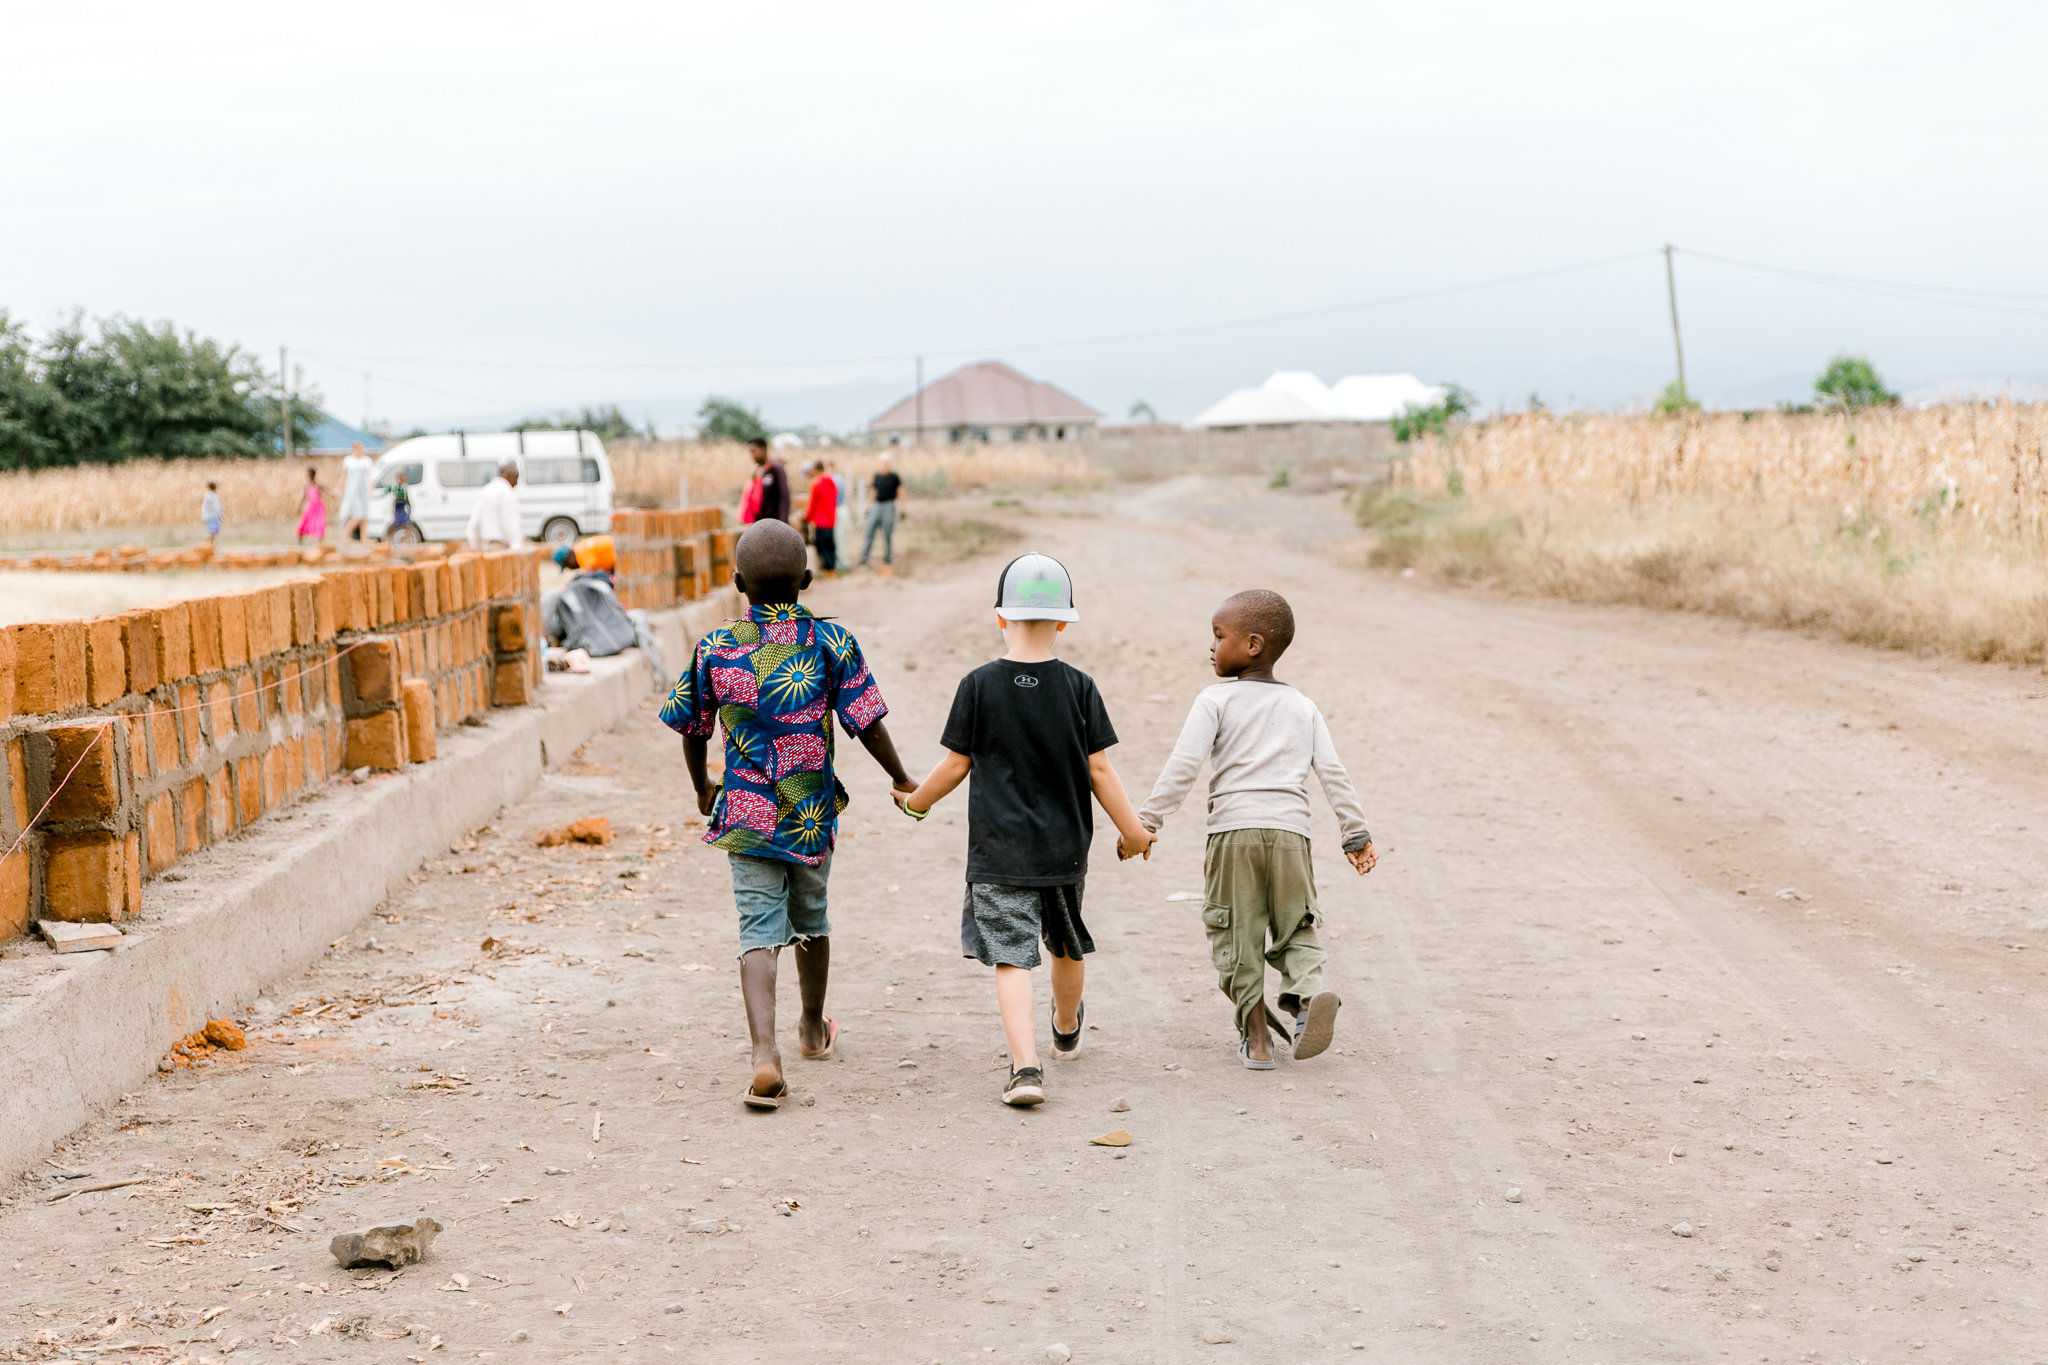 Africa-Word-Of-Life-Missions-Holly-Felts-Photography-344.jpg